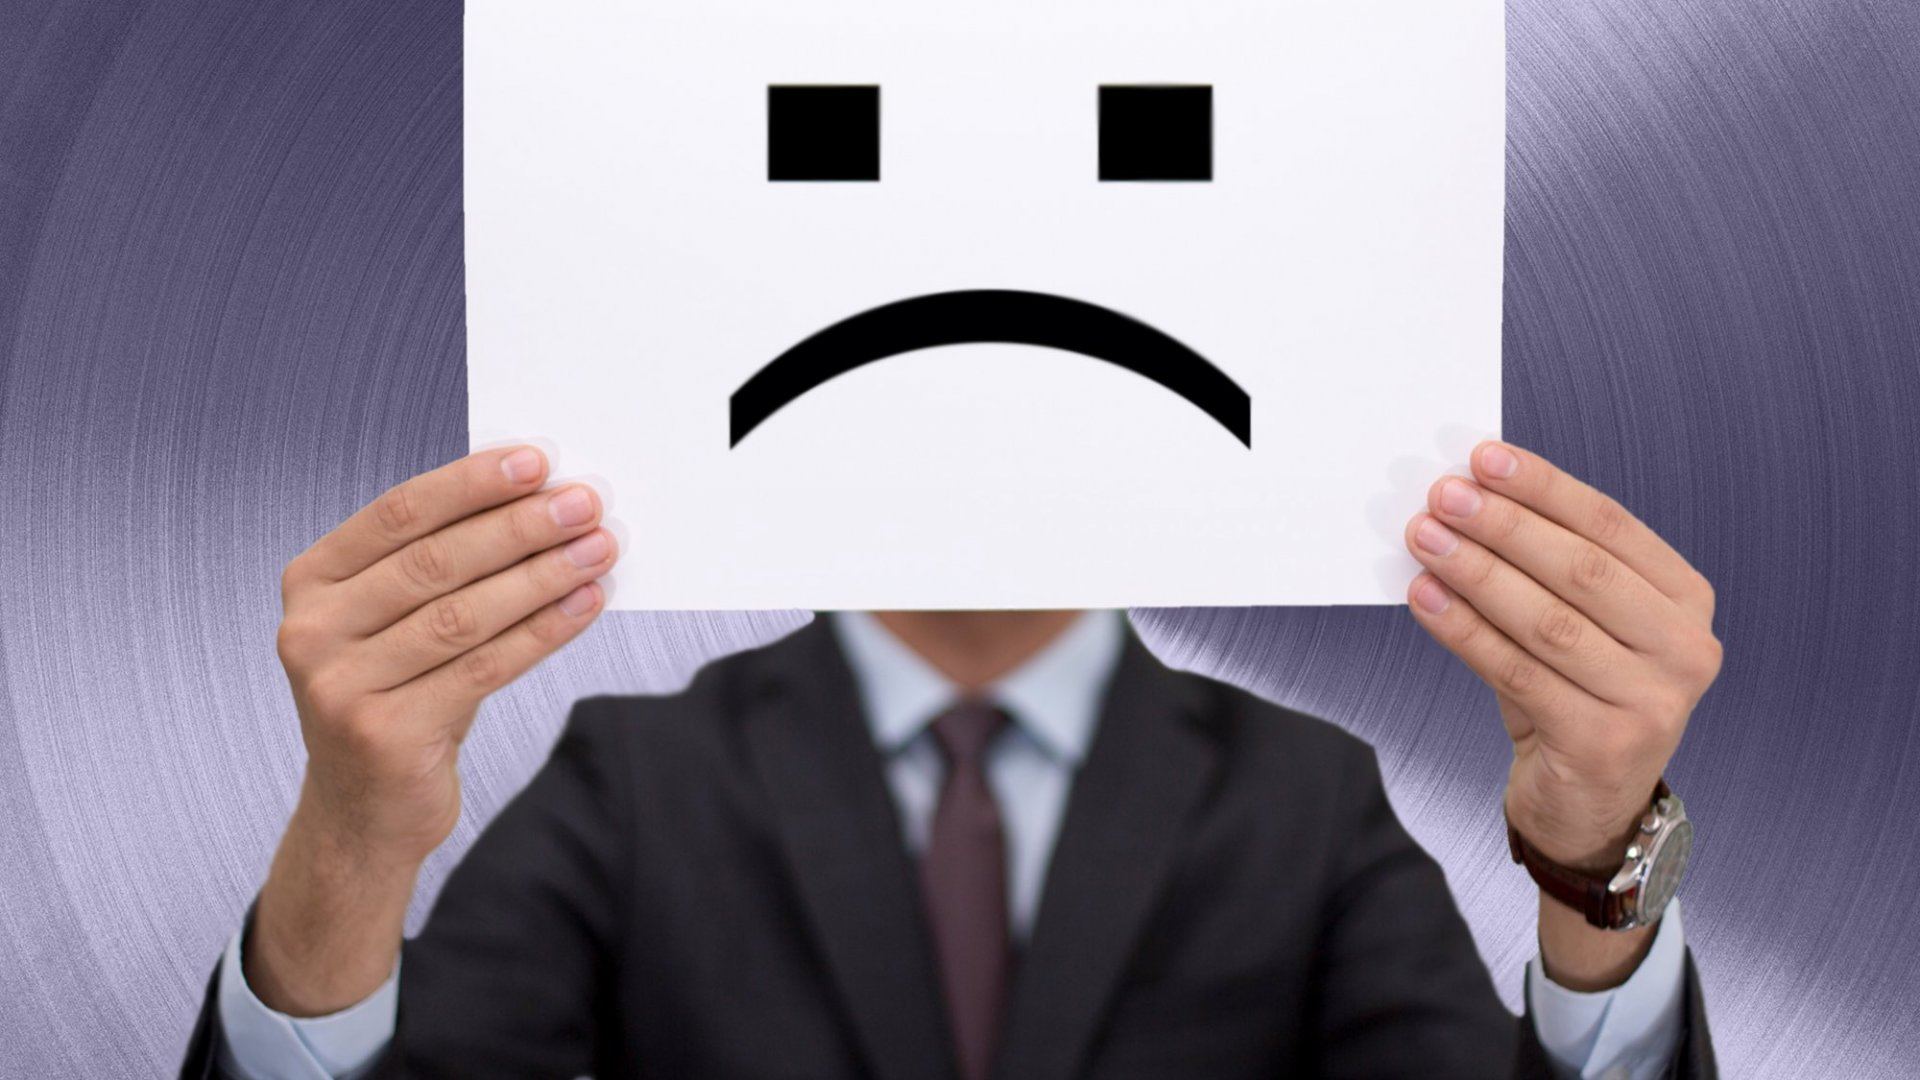 How to Recognize Who the Subtle Workplace Bully Is (Is it You?)